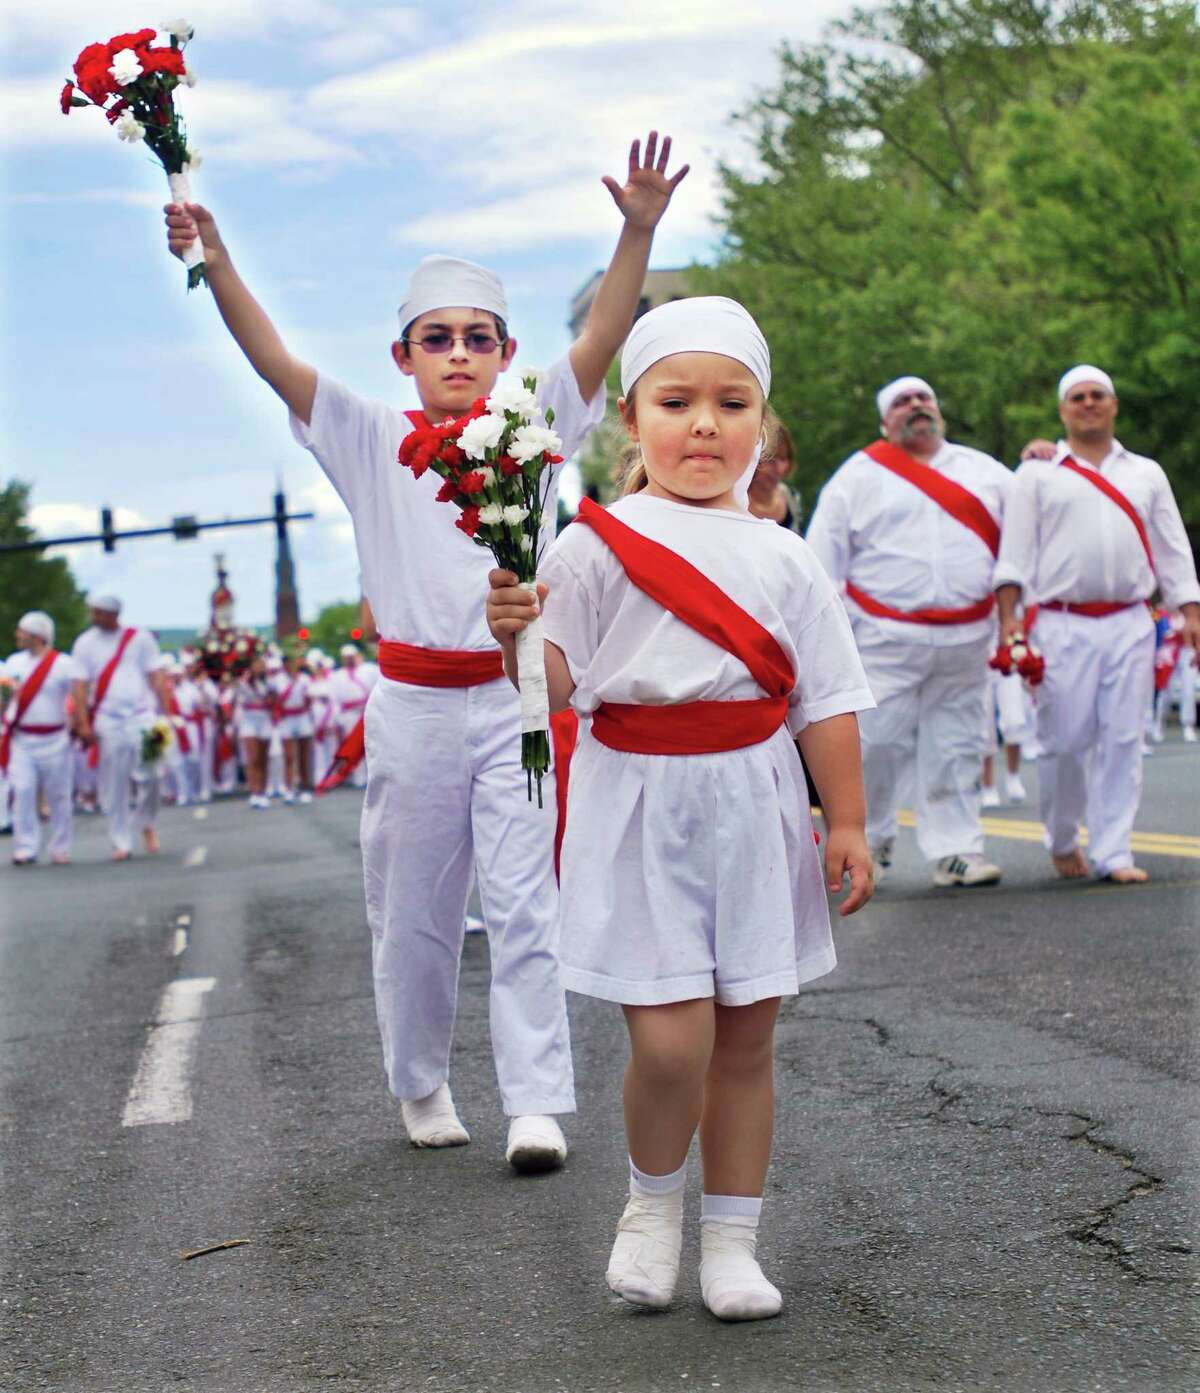 Christina Faraci and her brother, Dylan Faraci, march up Main Street during the i Nuri run at the St. Sebastian Feast in Middletown in this 2010 file photo. (Andrew Avalone/Special to the Press)